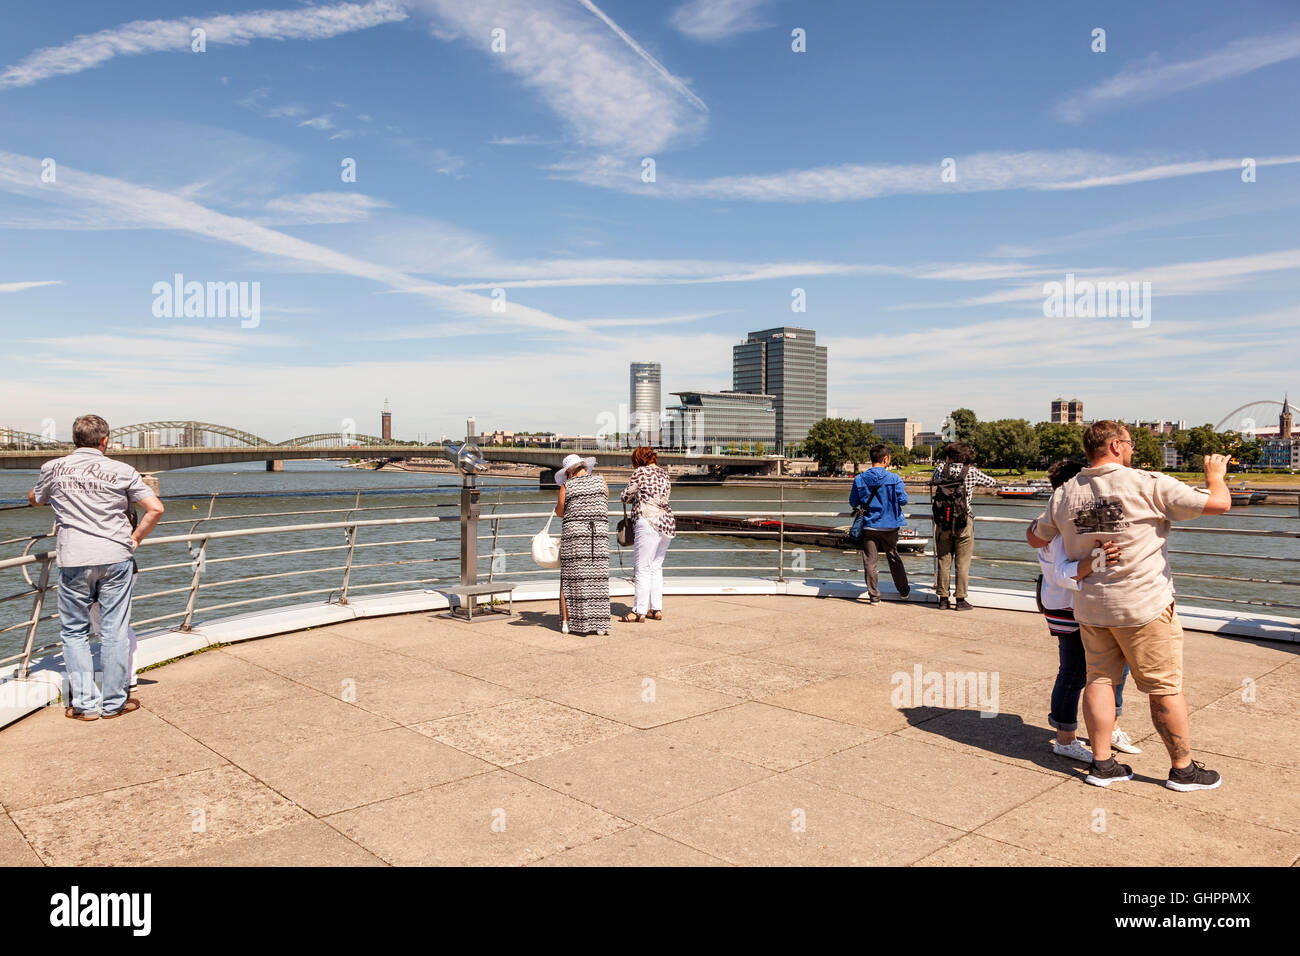 Tourists at the Rhine River promenade with a nice view in the city of Cologne, Germany - Stock Image